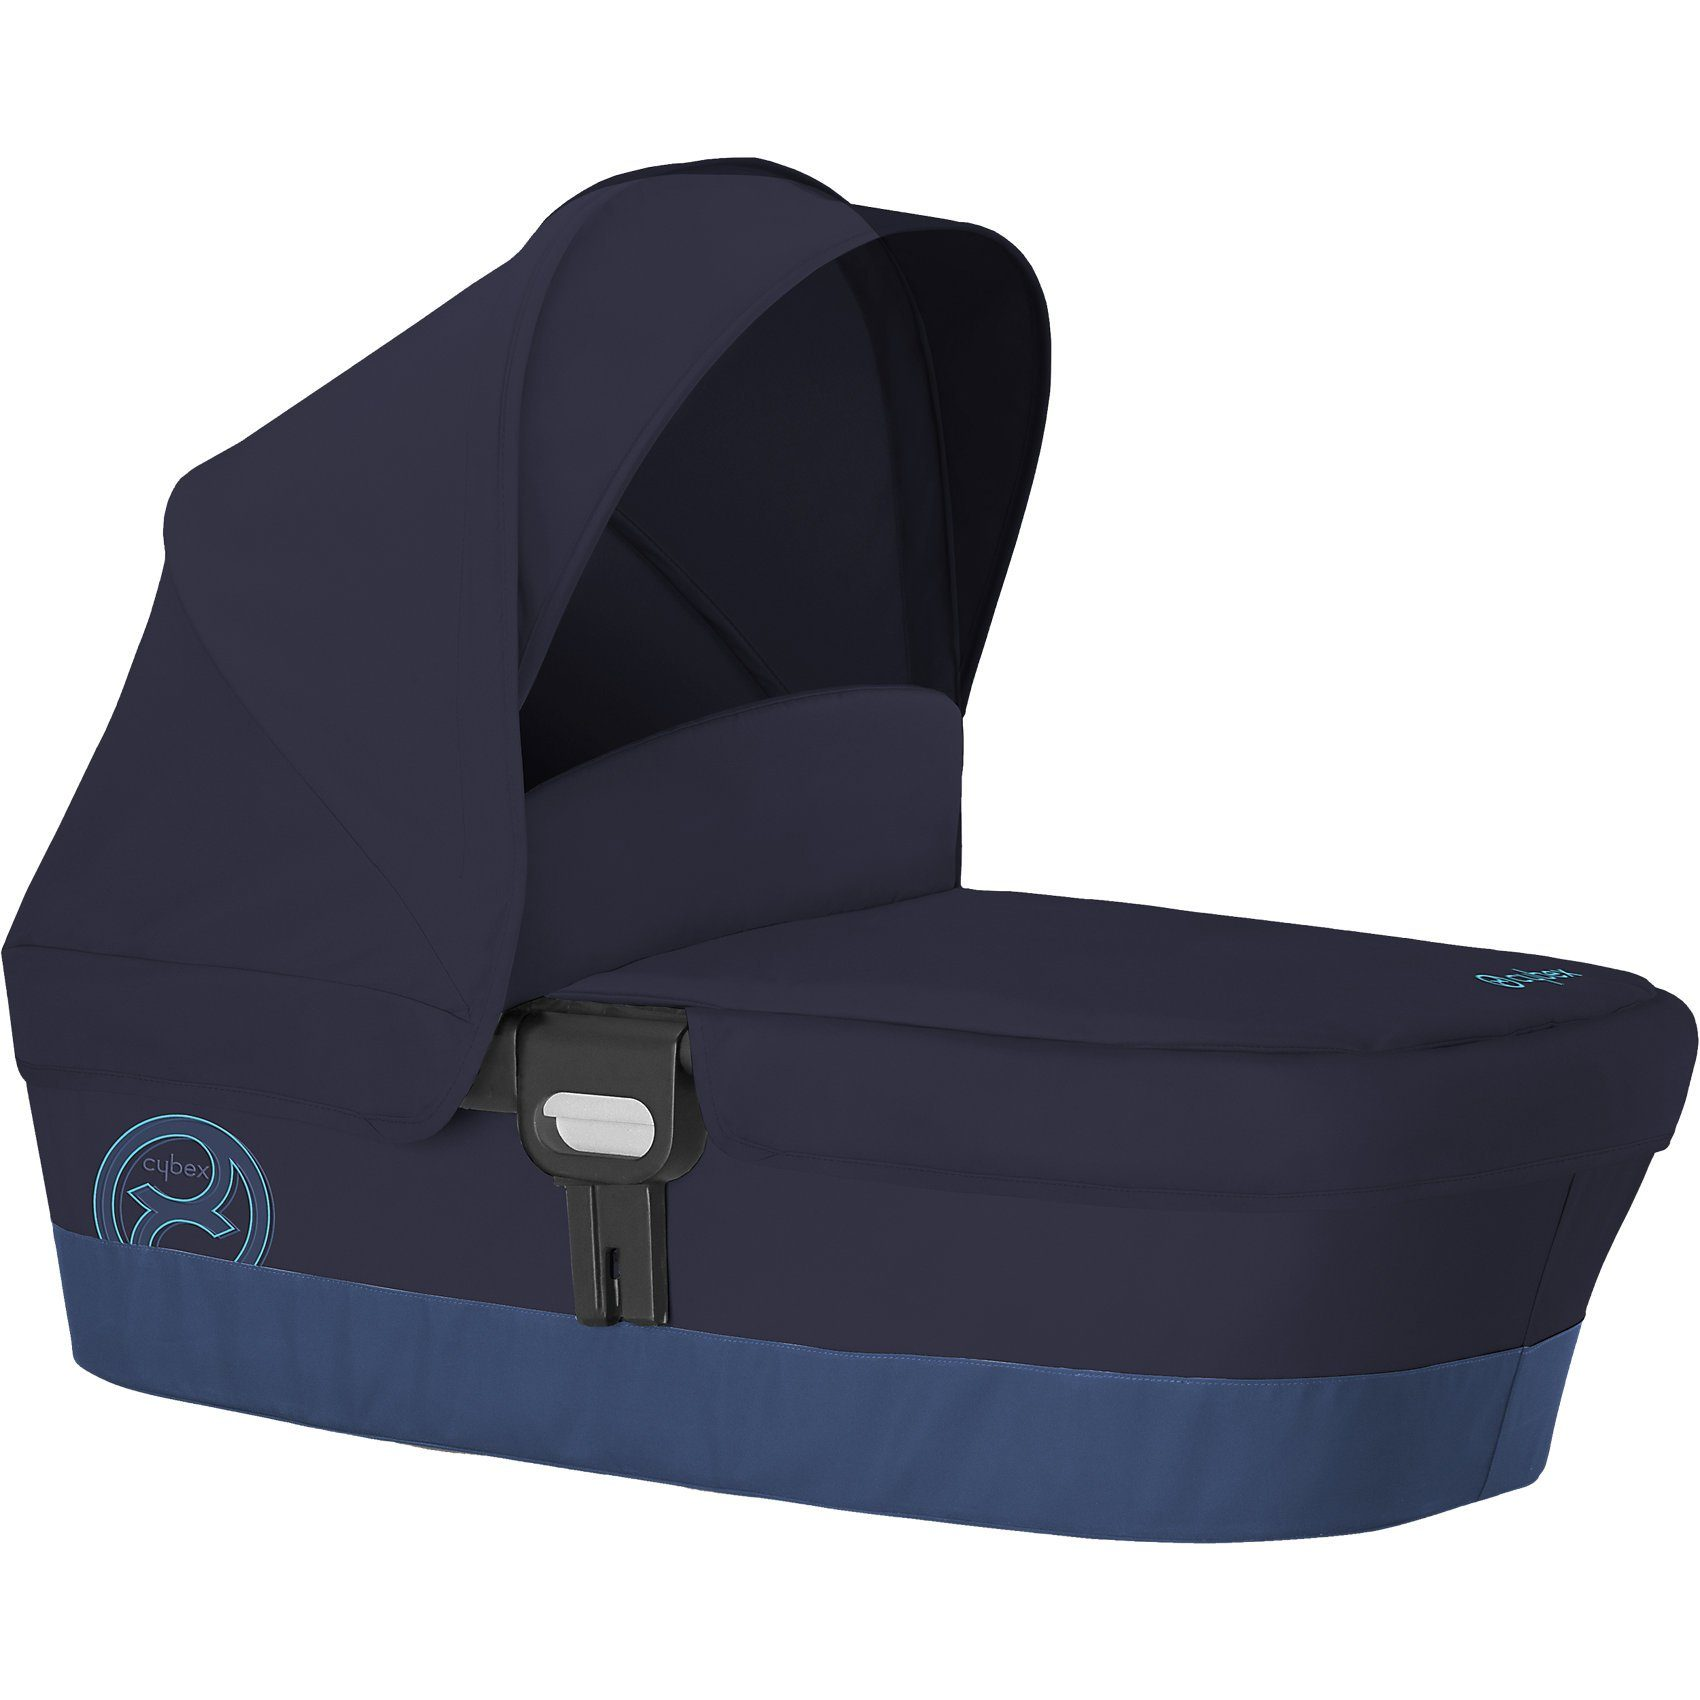 Cybex Kinderwagenaufsatz Carry Cot M, Gold-Line, True Blue, 2017